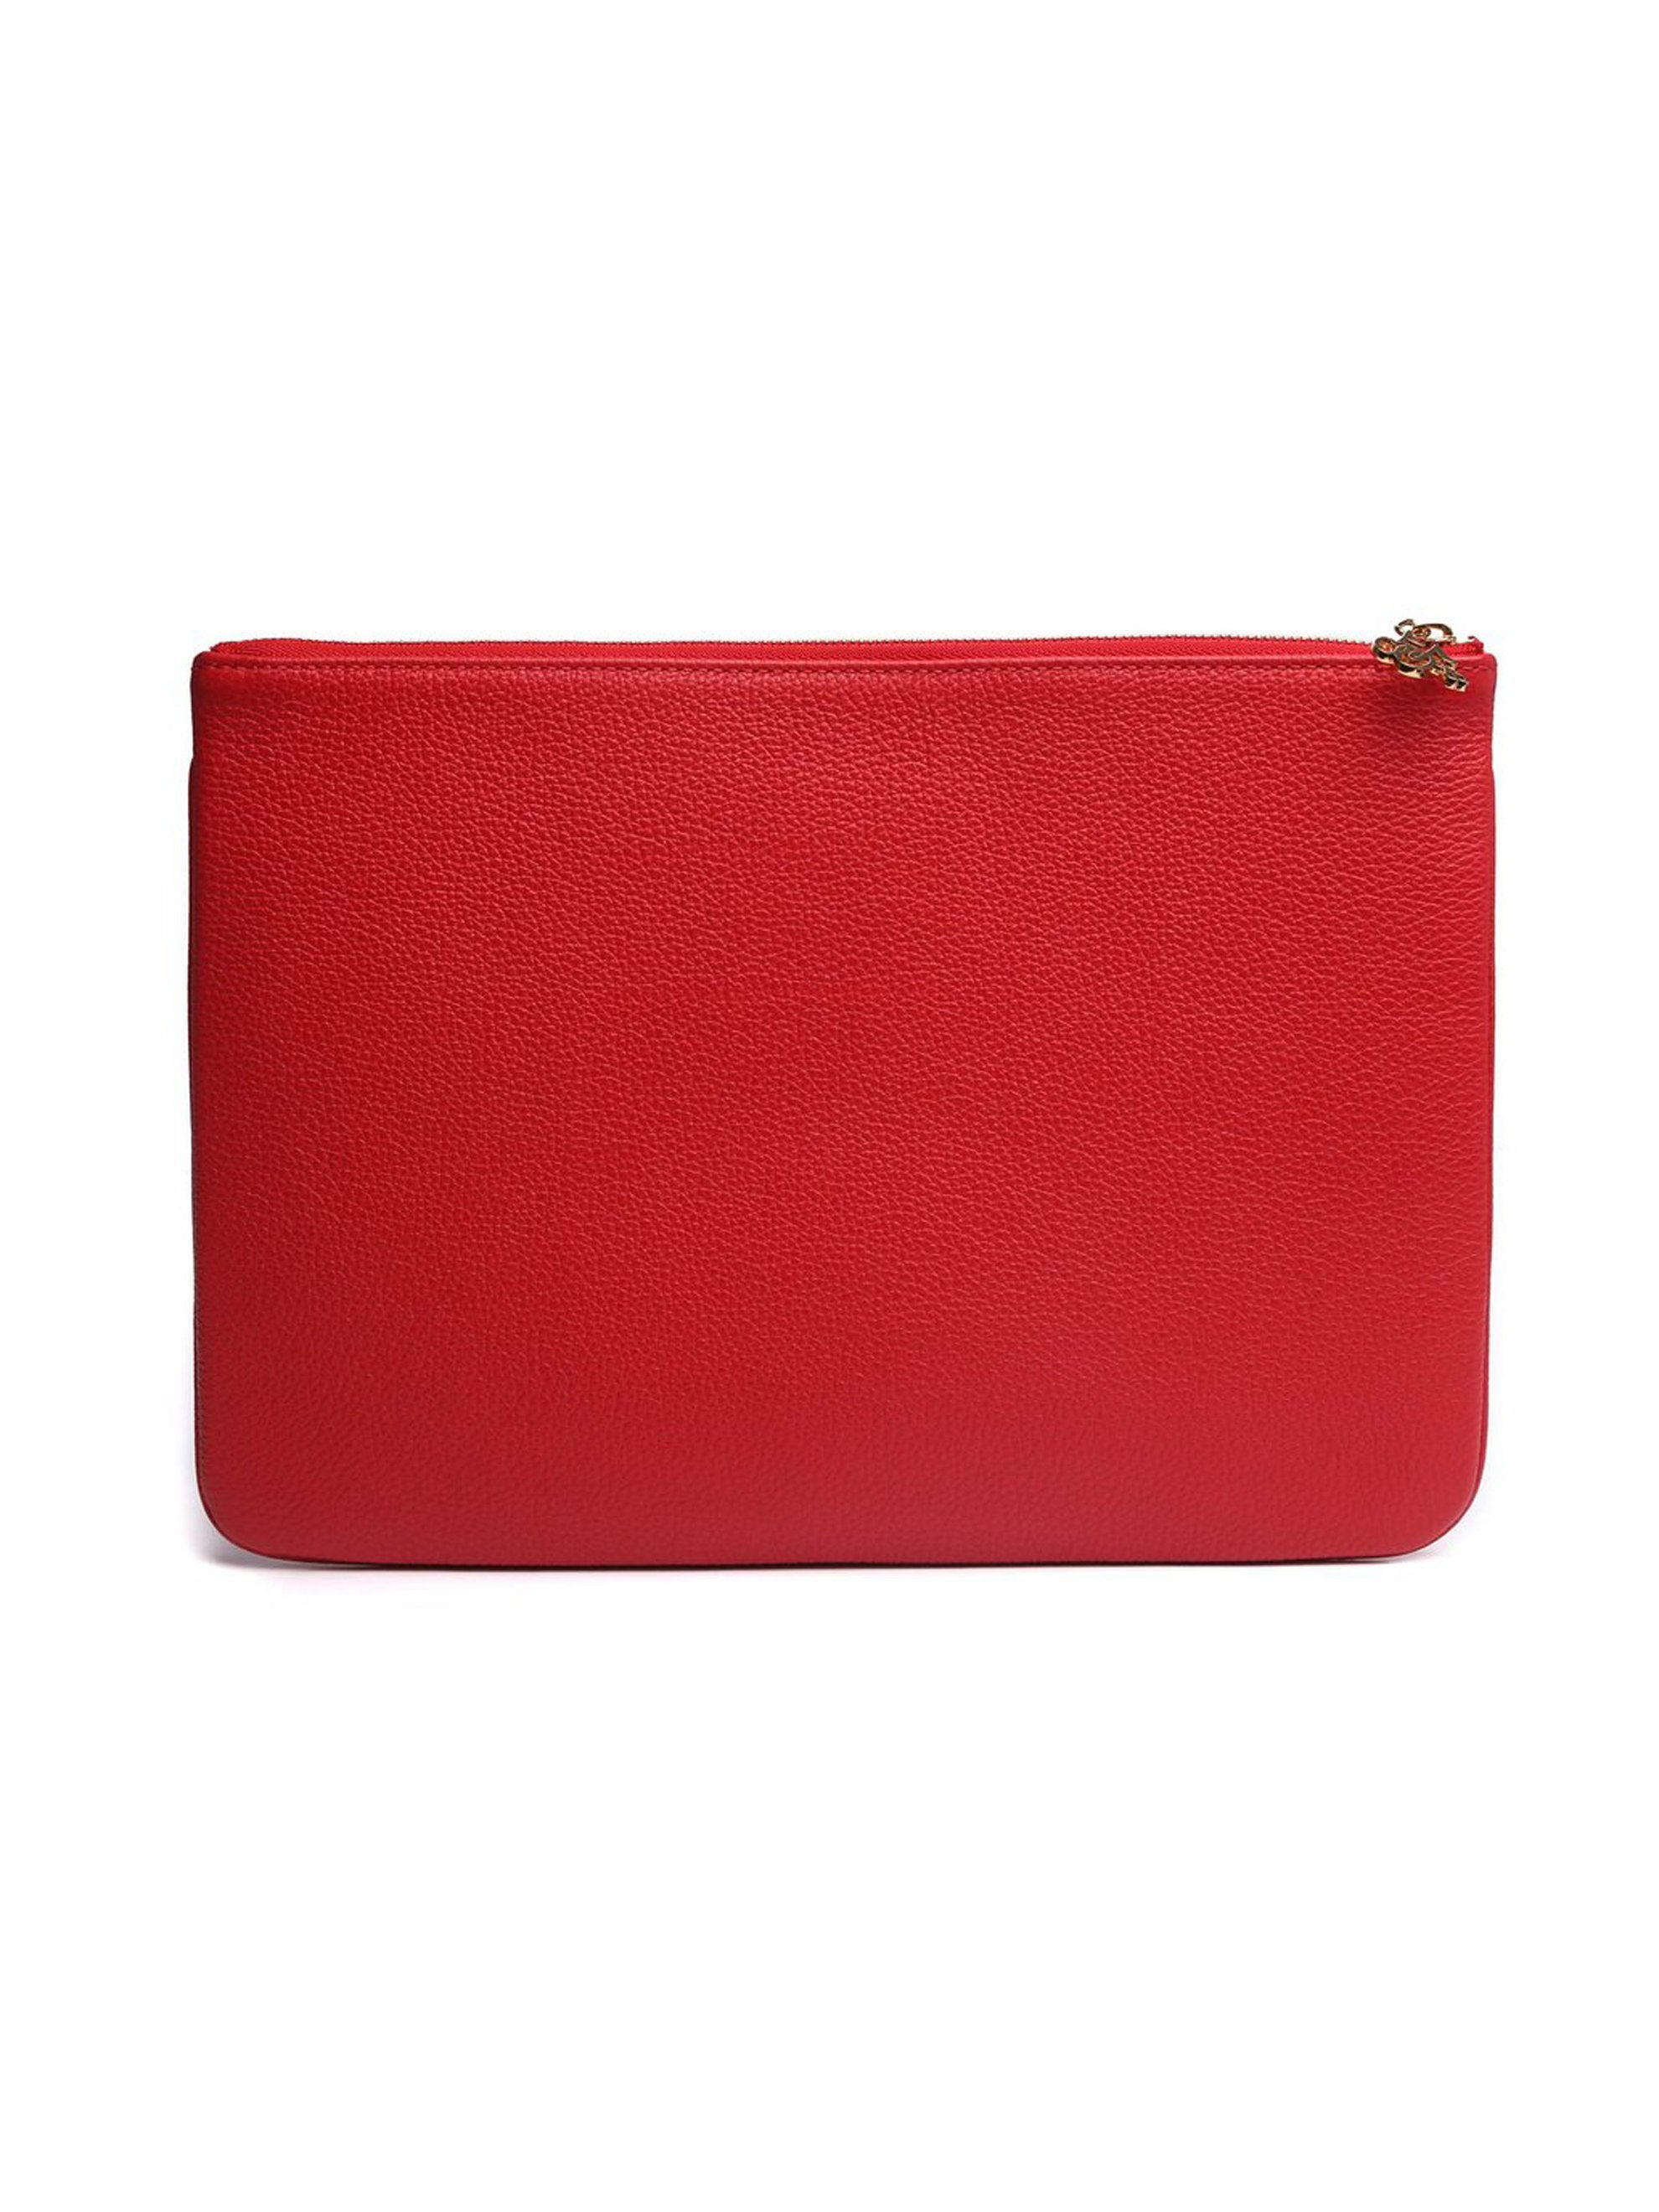 Red Leather Pouch 3